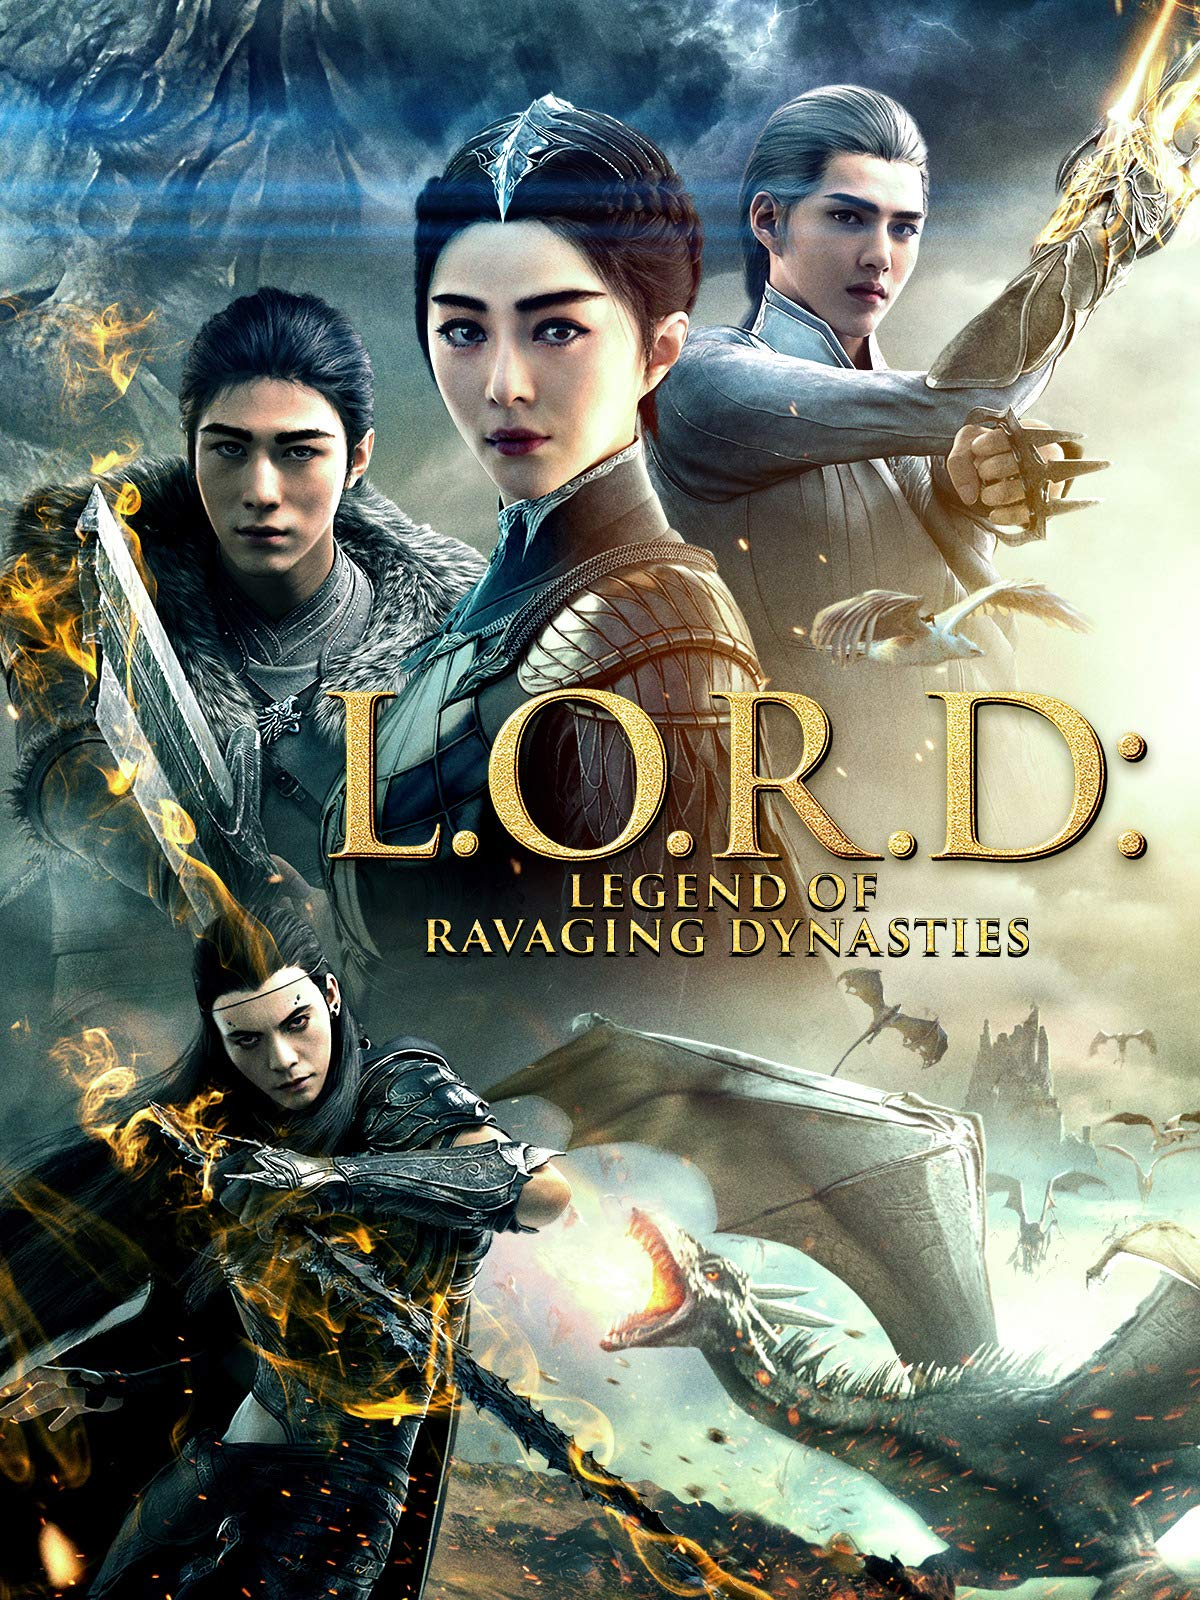 L.O.R.D. Legend of Ravaging Dynasties on Amazon Prime Instant Video UK